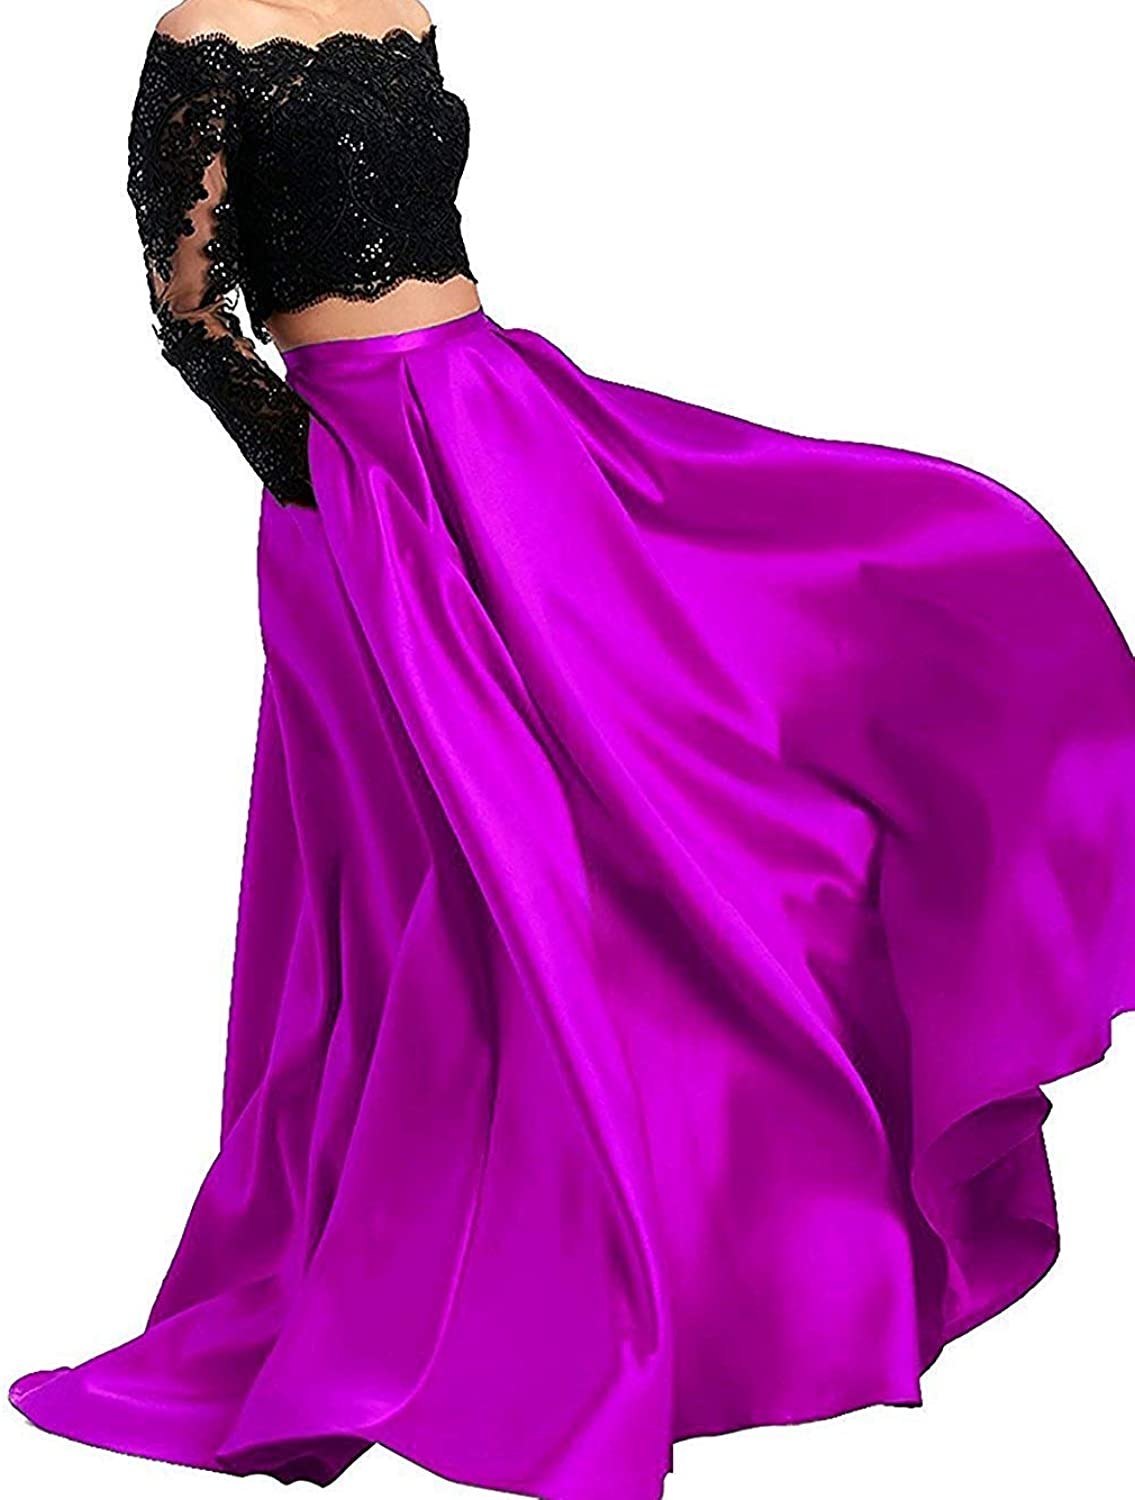 ANFF Two Piece Long Sleeves Prom Dresses Off The Shoulder Formal Dresses for Women Evening Gowns